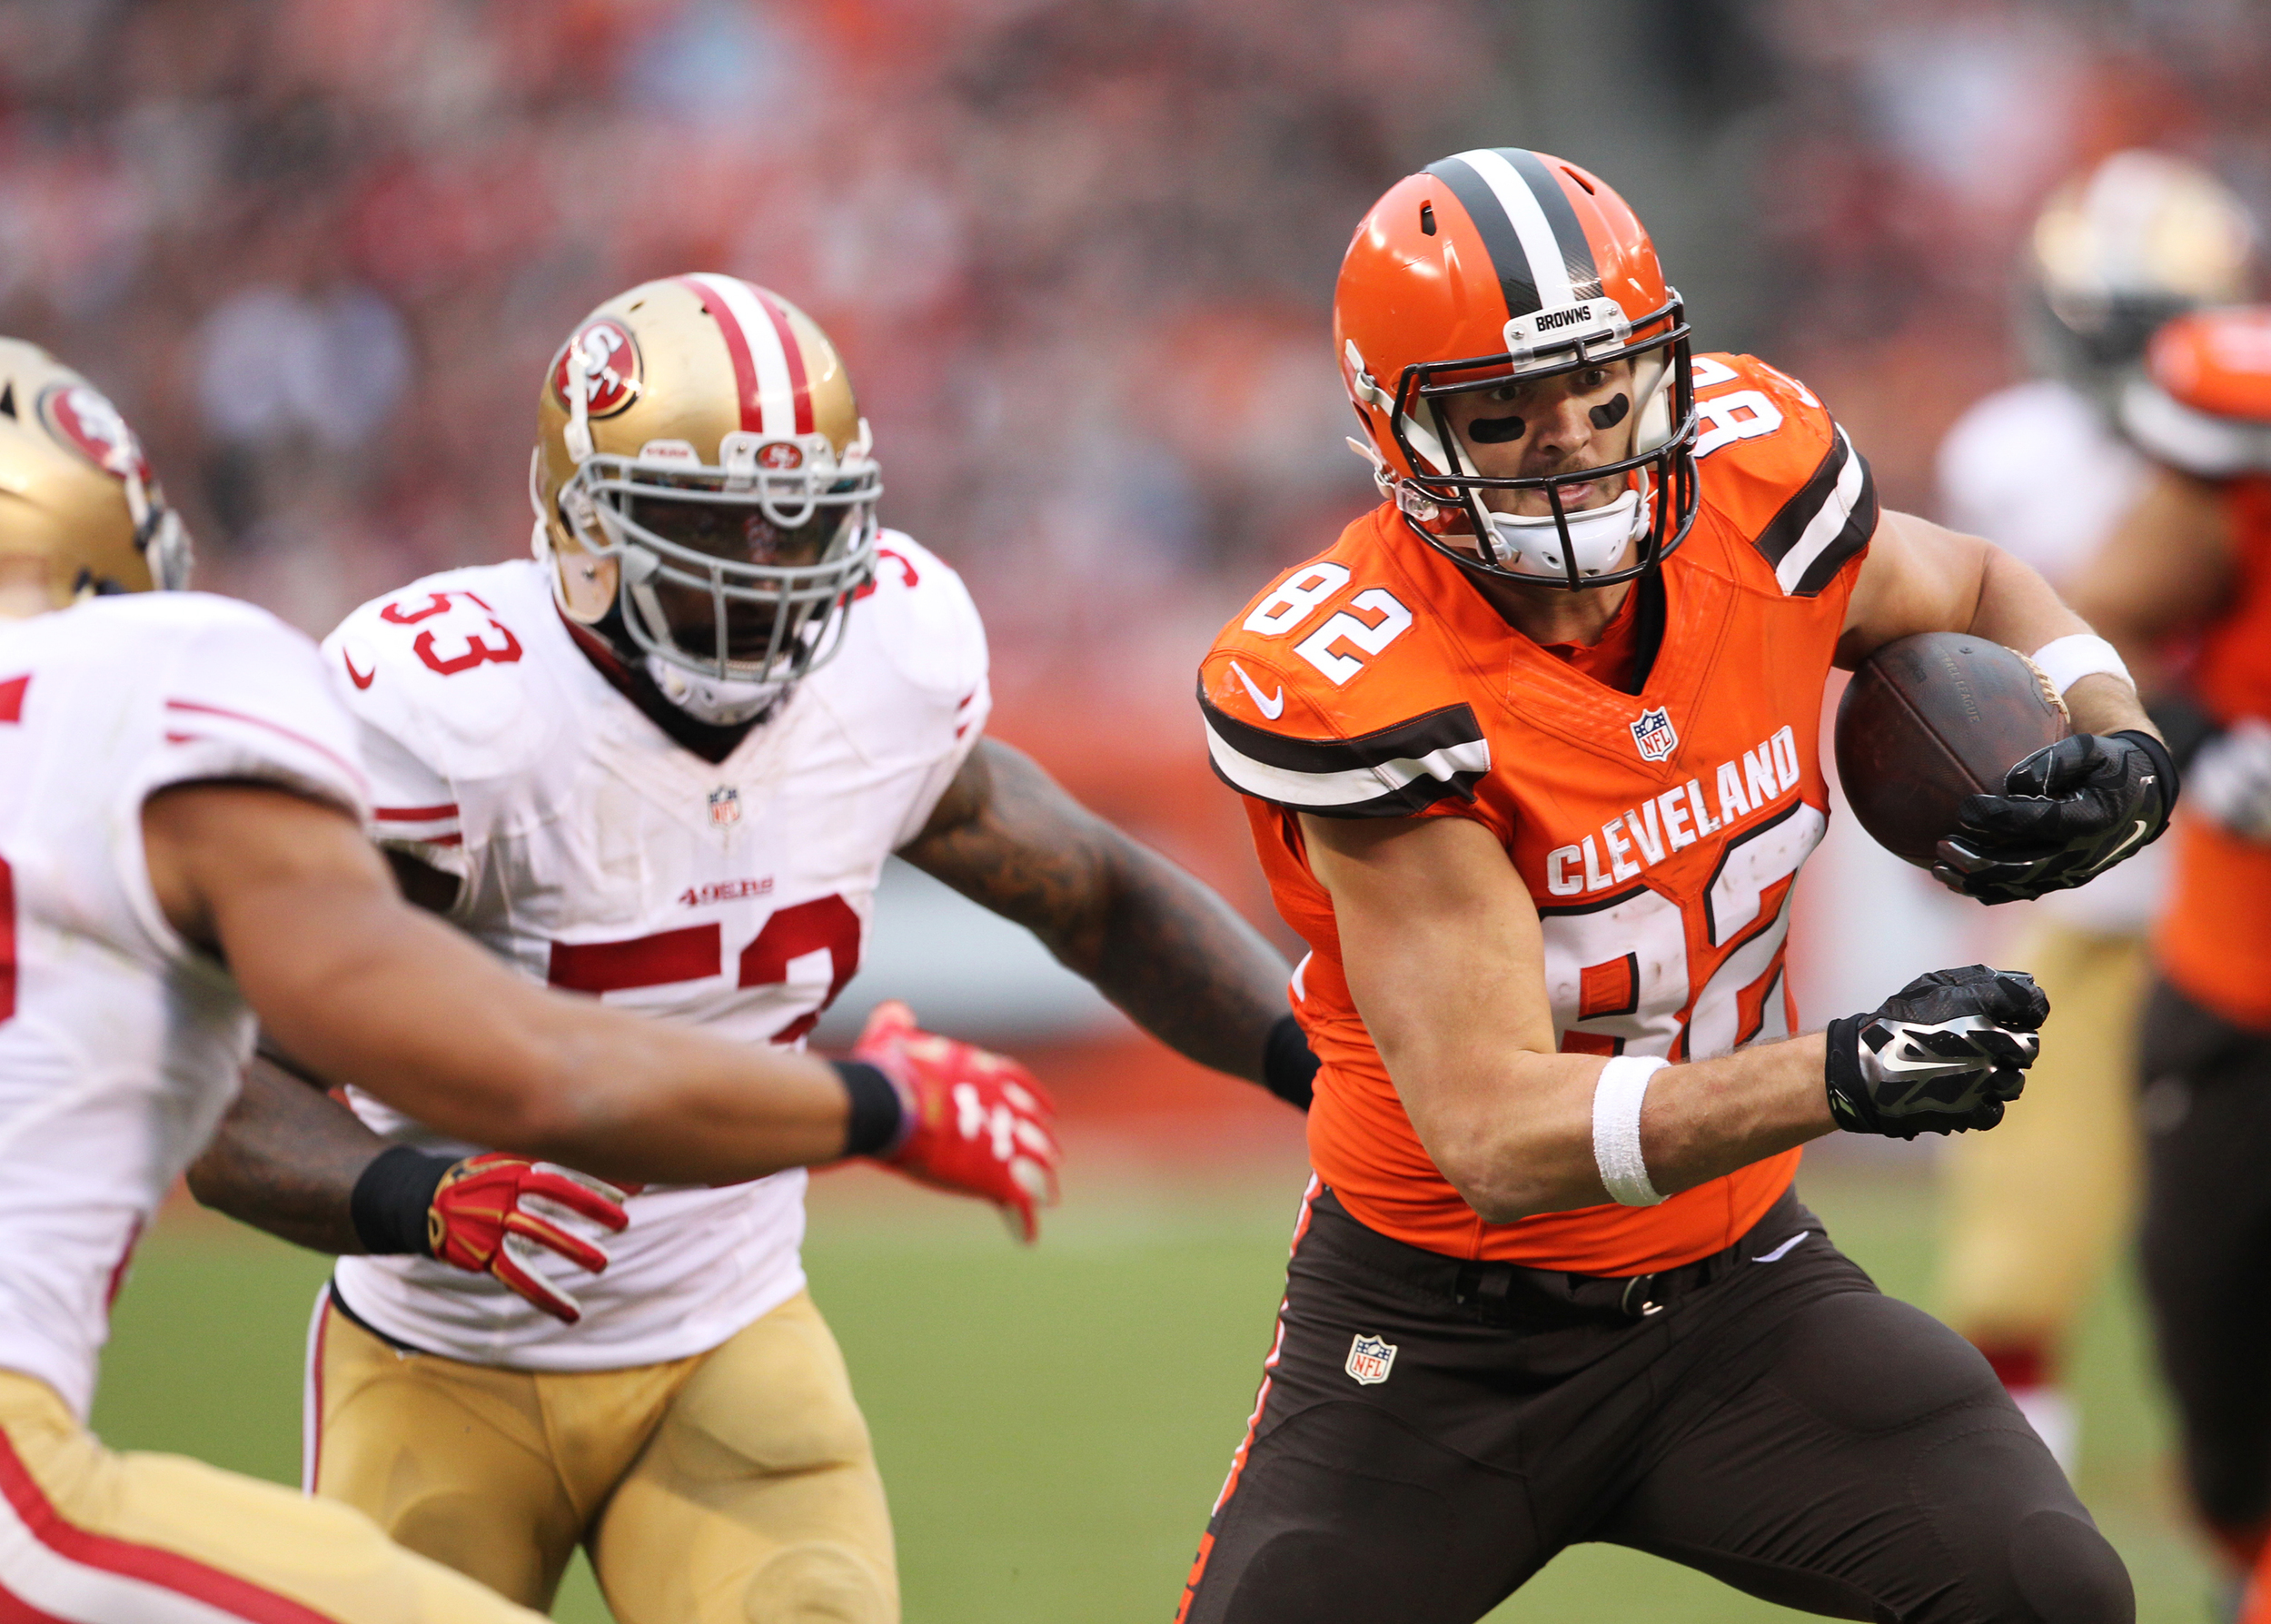 Cleveland tight end Gary Barnidge (82) runs after a completed pass as the Browns drive down the field to score their second touchdown against the San Francisco 49eres during the third quarter of the NFL football game at First Energy Stadium on Sunday, Dec. 13, 2015 in Cleveland, Ohio. The Browns beat the 49ers 23-10 for their first win in 2 months, bringing their record to 3-10 overall.